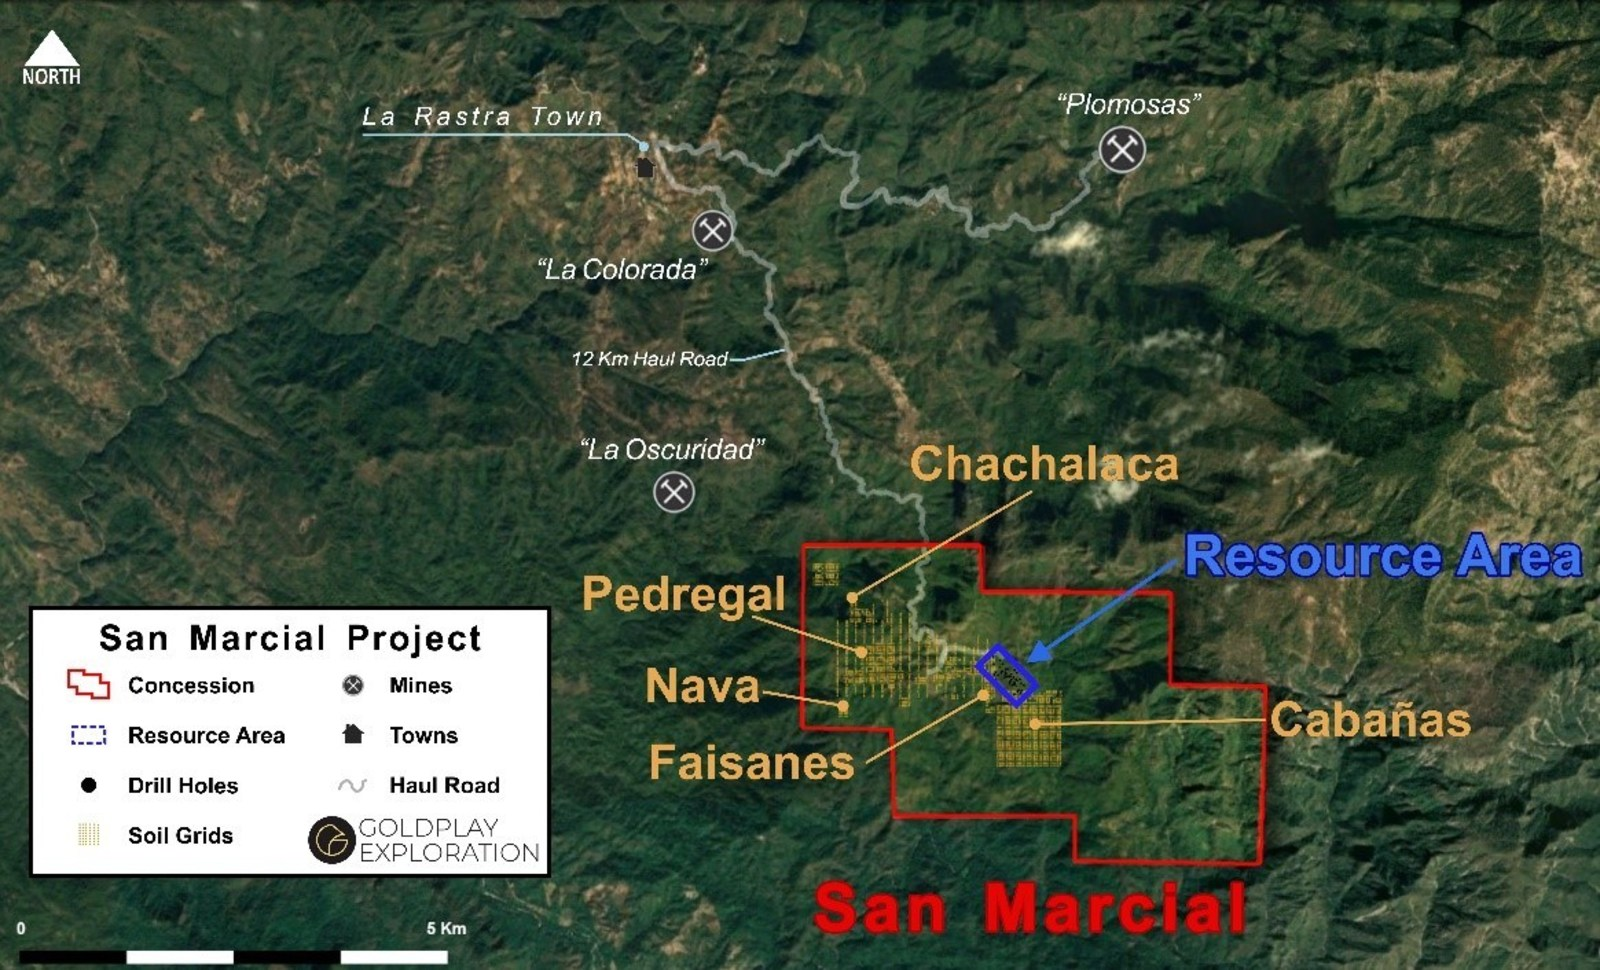 Figure 2  San Marcial - Location of Resource Area and New Targets Inside Concession